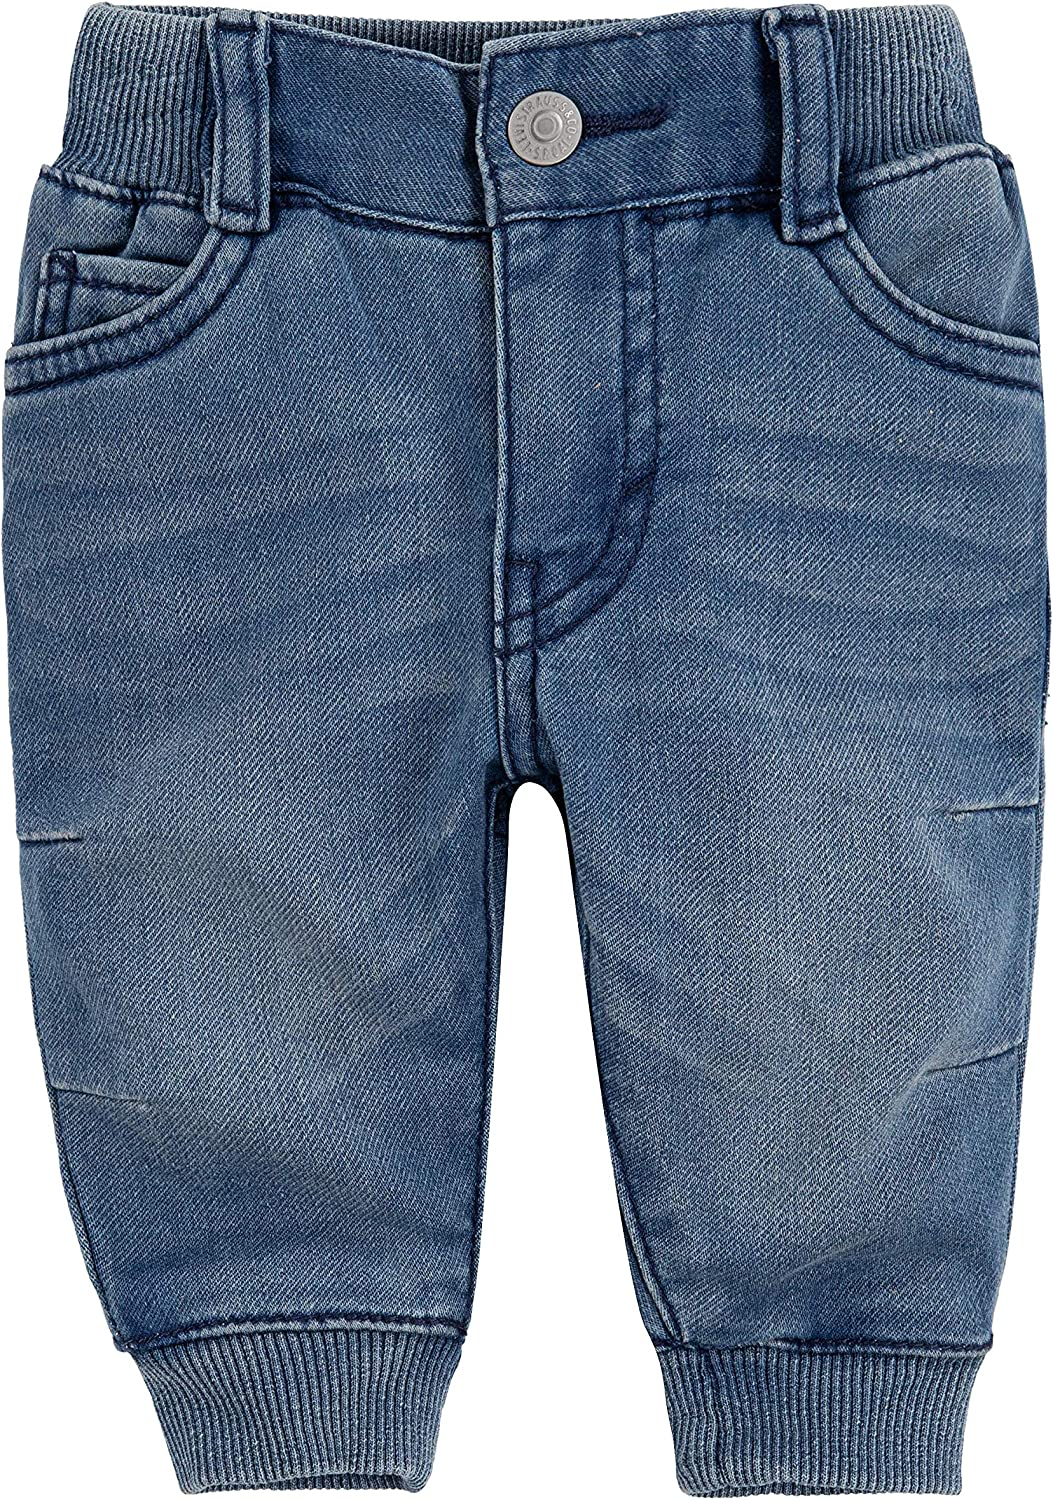 Levi's Baby Boys' Jogger Pants: Clothing, Shoes & Jewelry